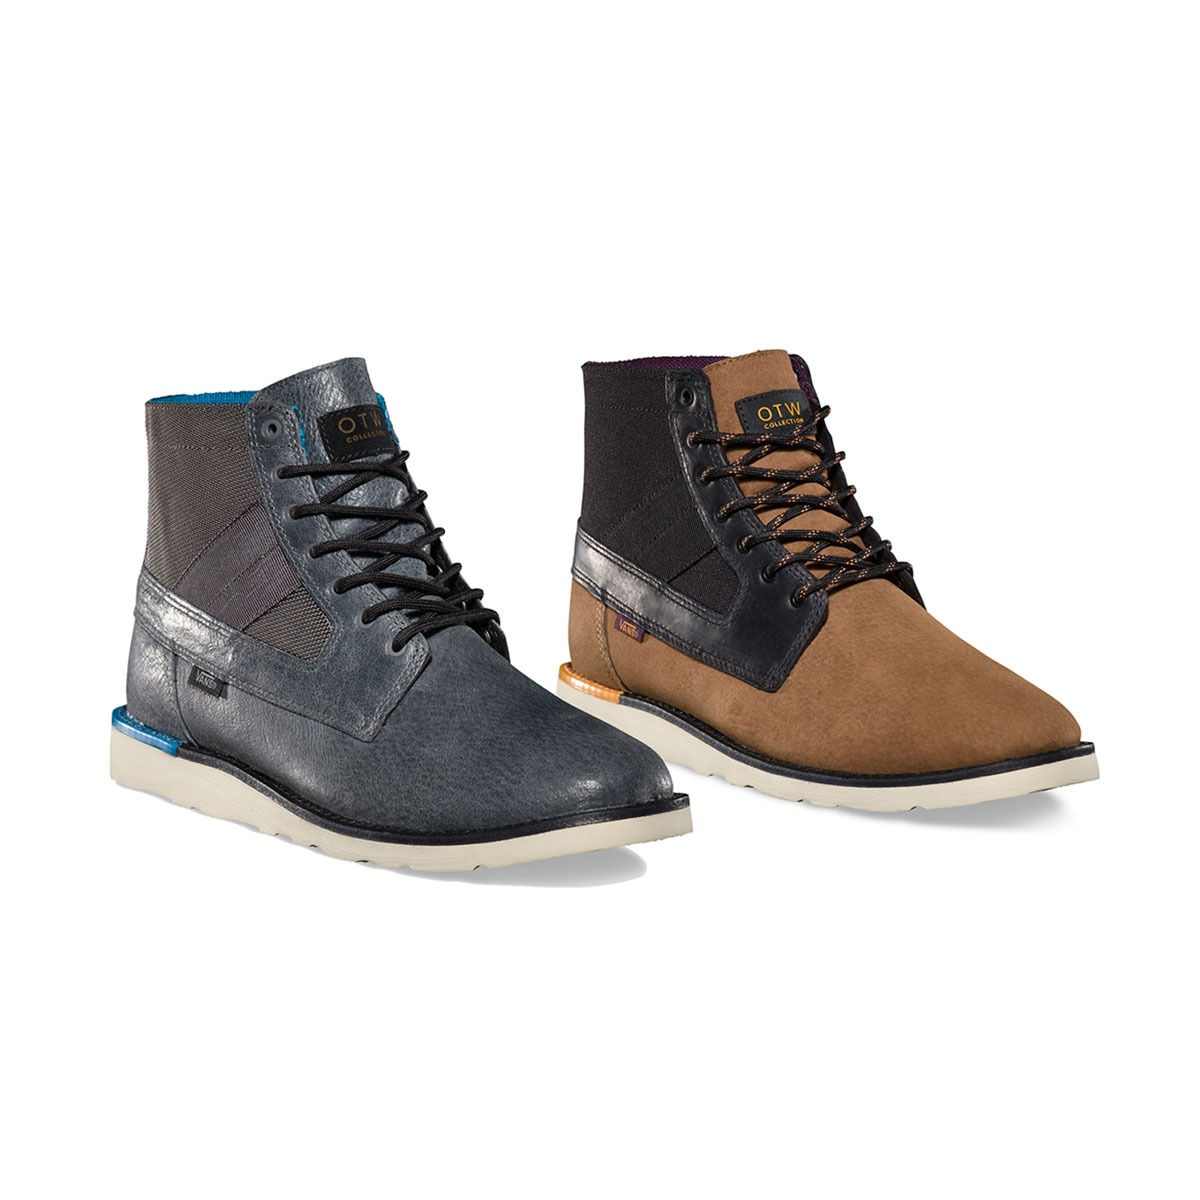 Vans OTW Collection Breton Boot for Fall 2013 e7a6b4f45